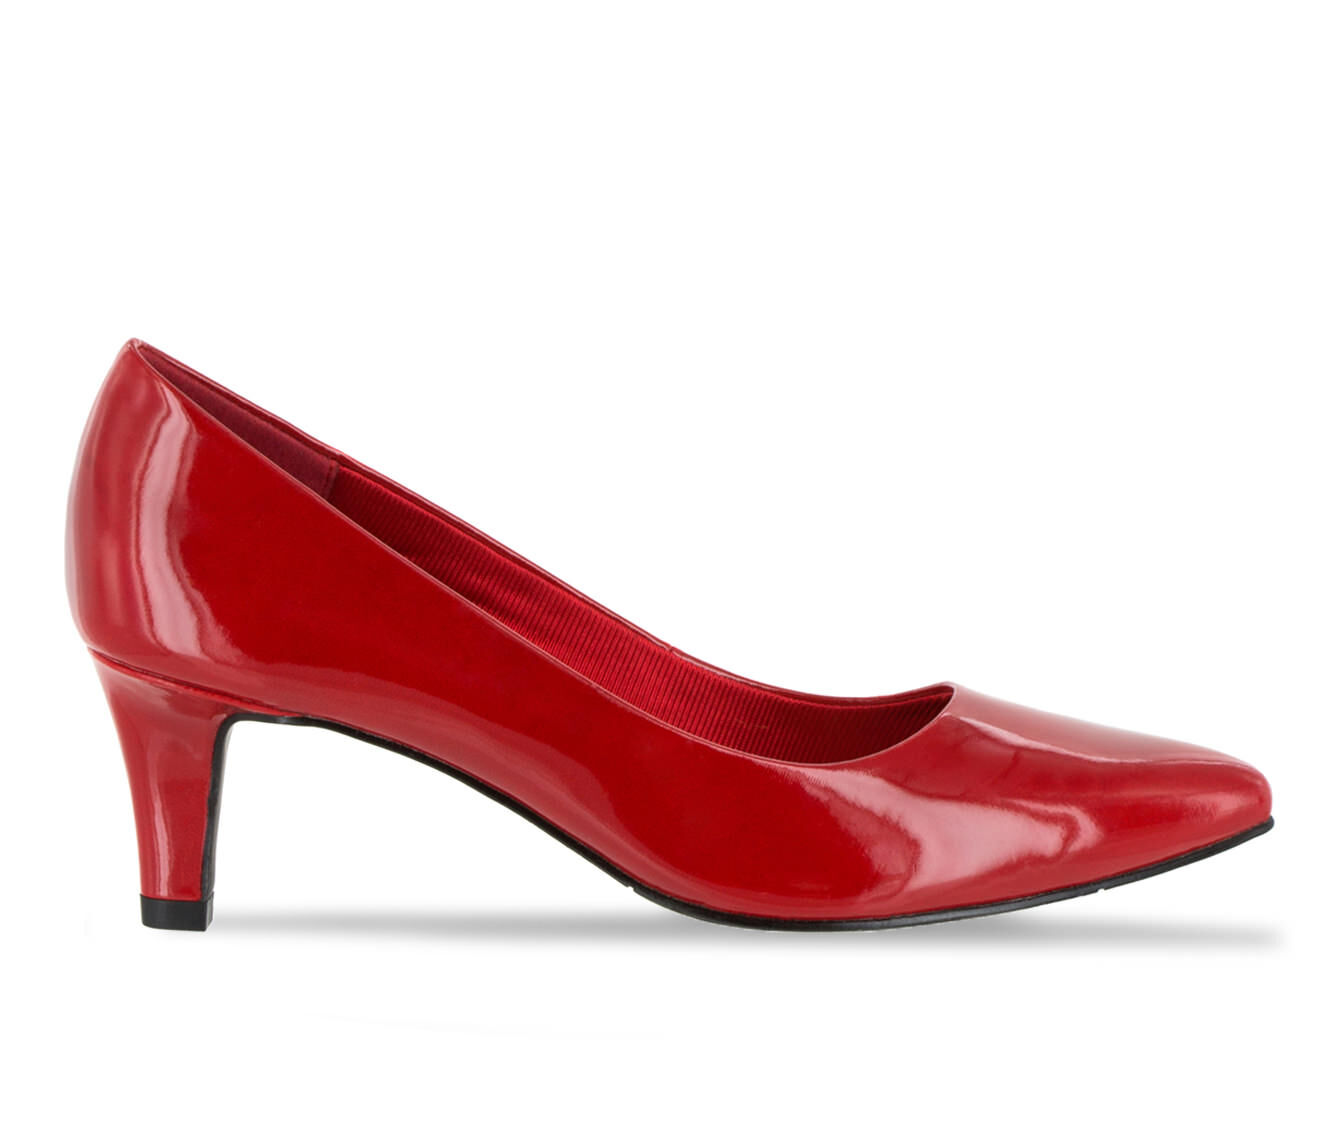 autumn styles Women's Easy Street Pointe Shoes Red Patent